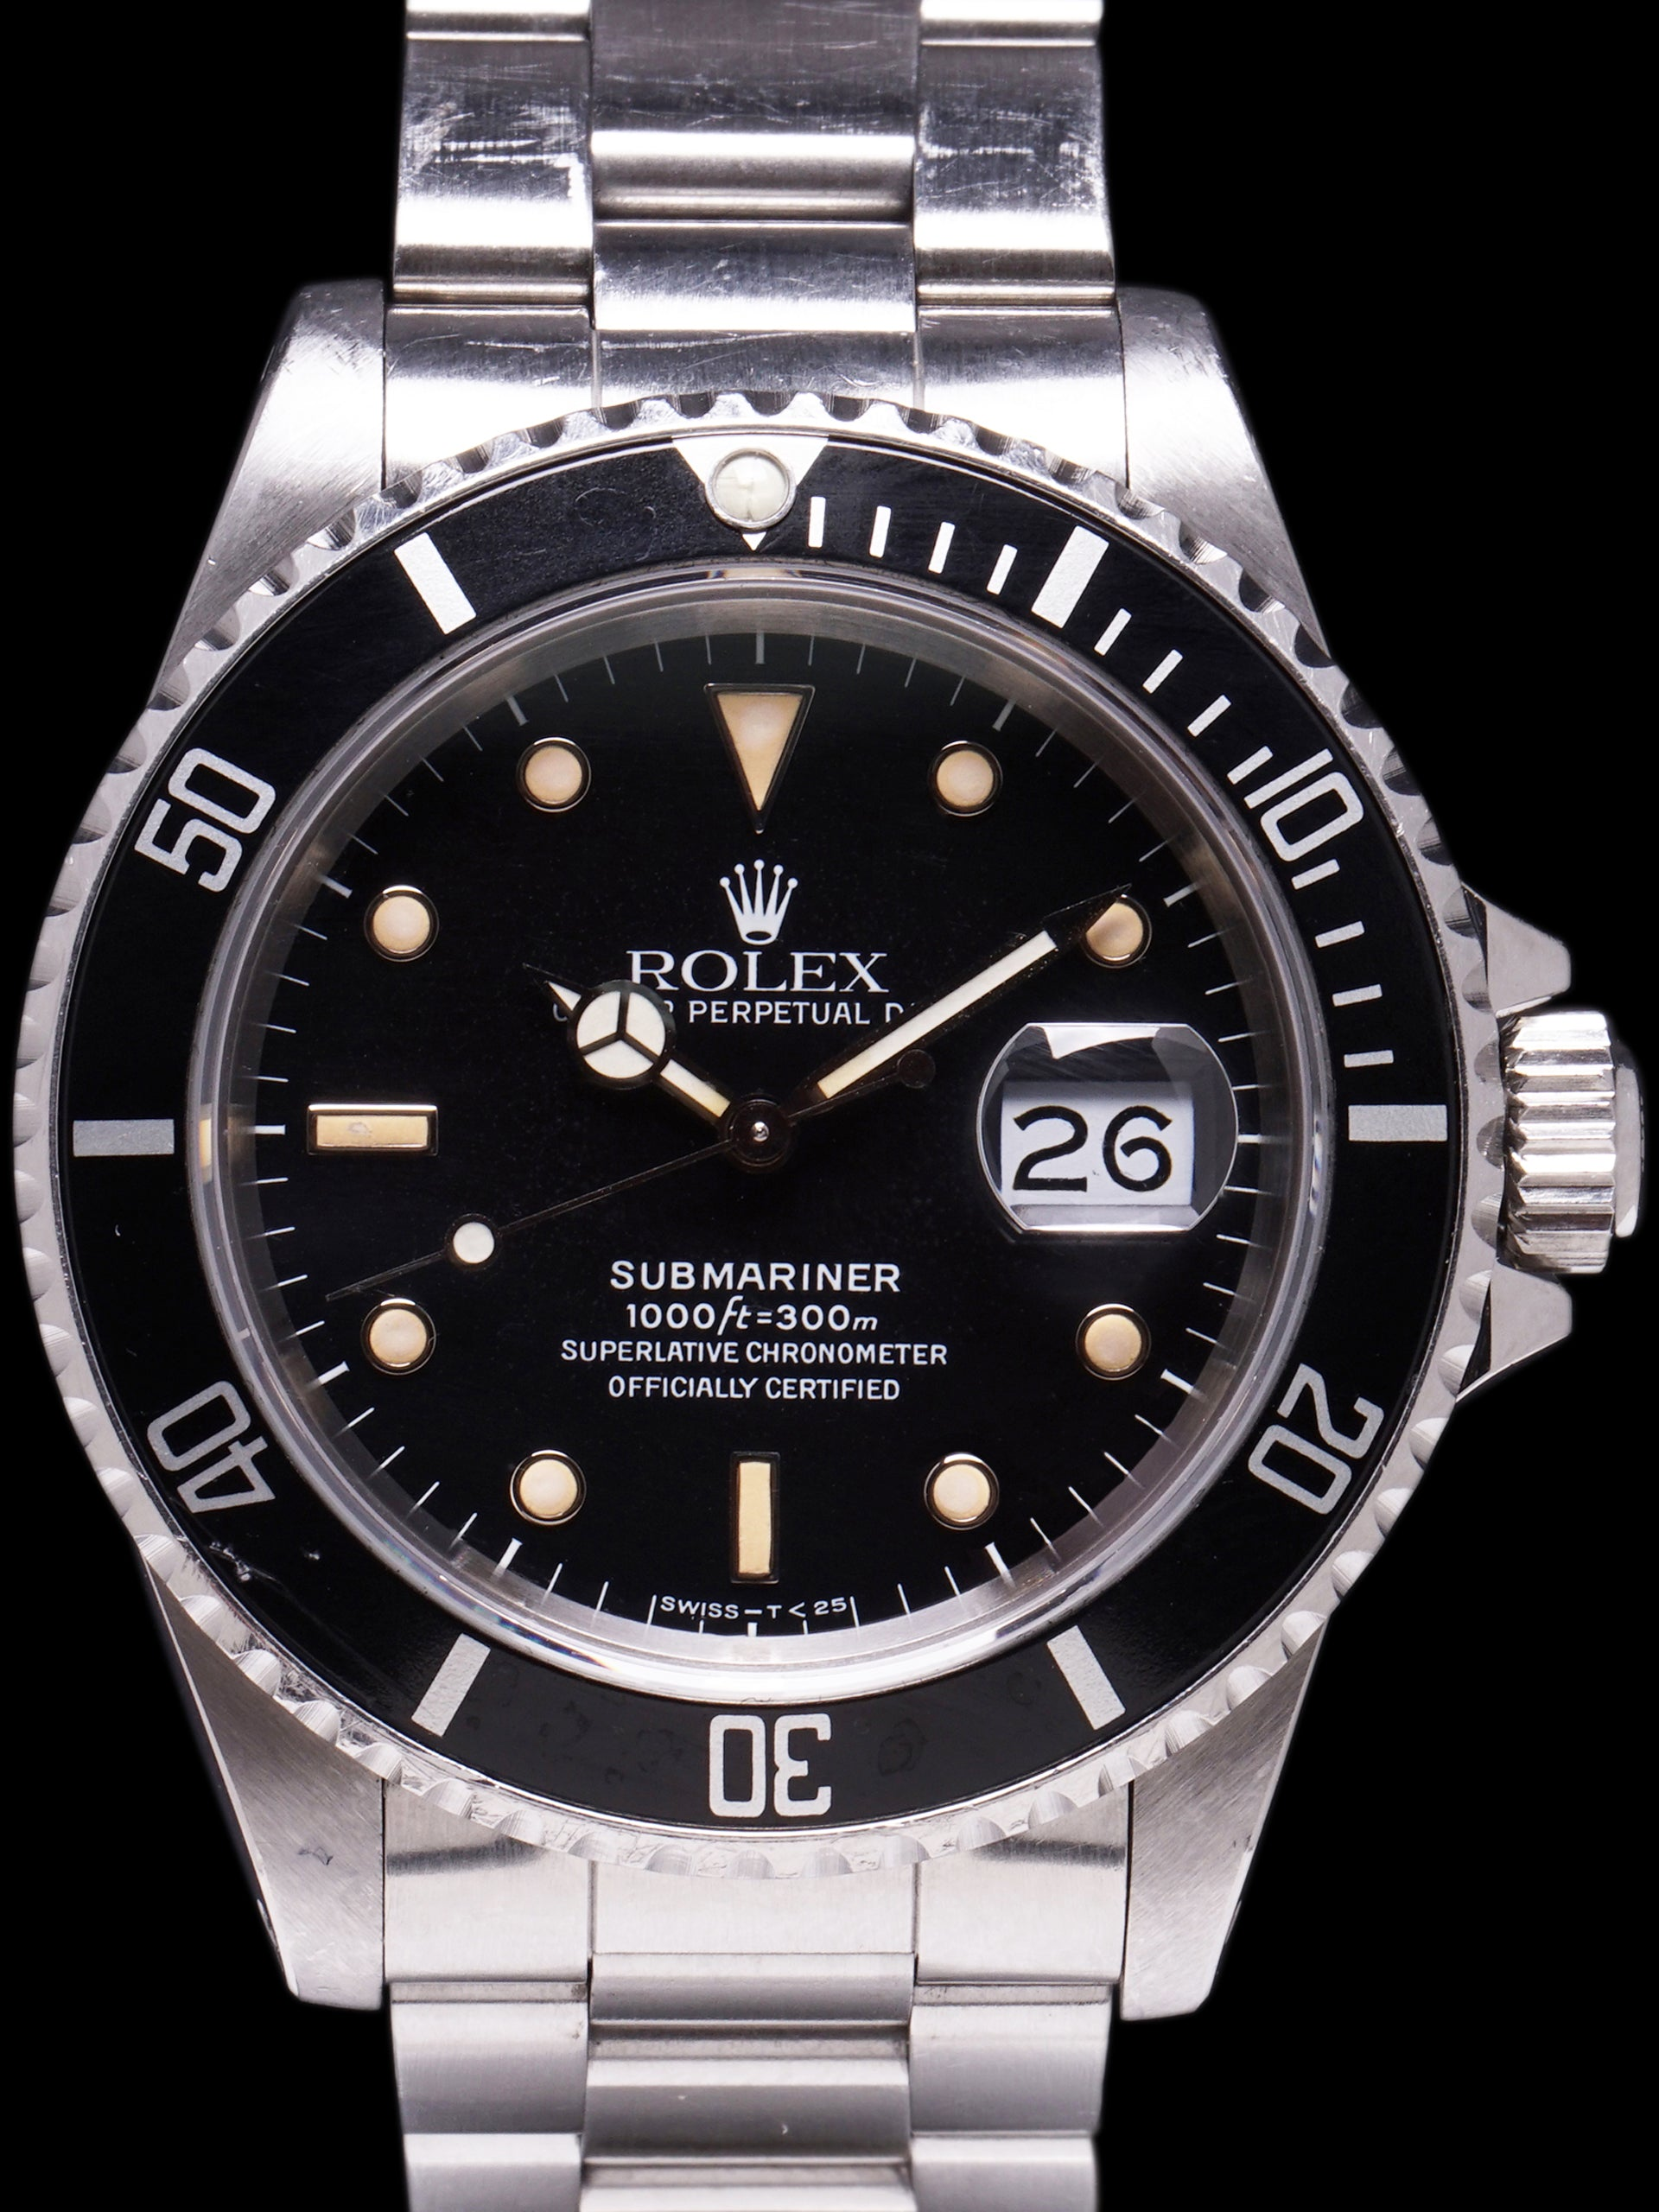 1989 Rolex Submariner (Ref. 16610) W/ Papers and Hangtags